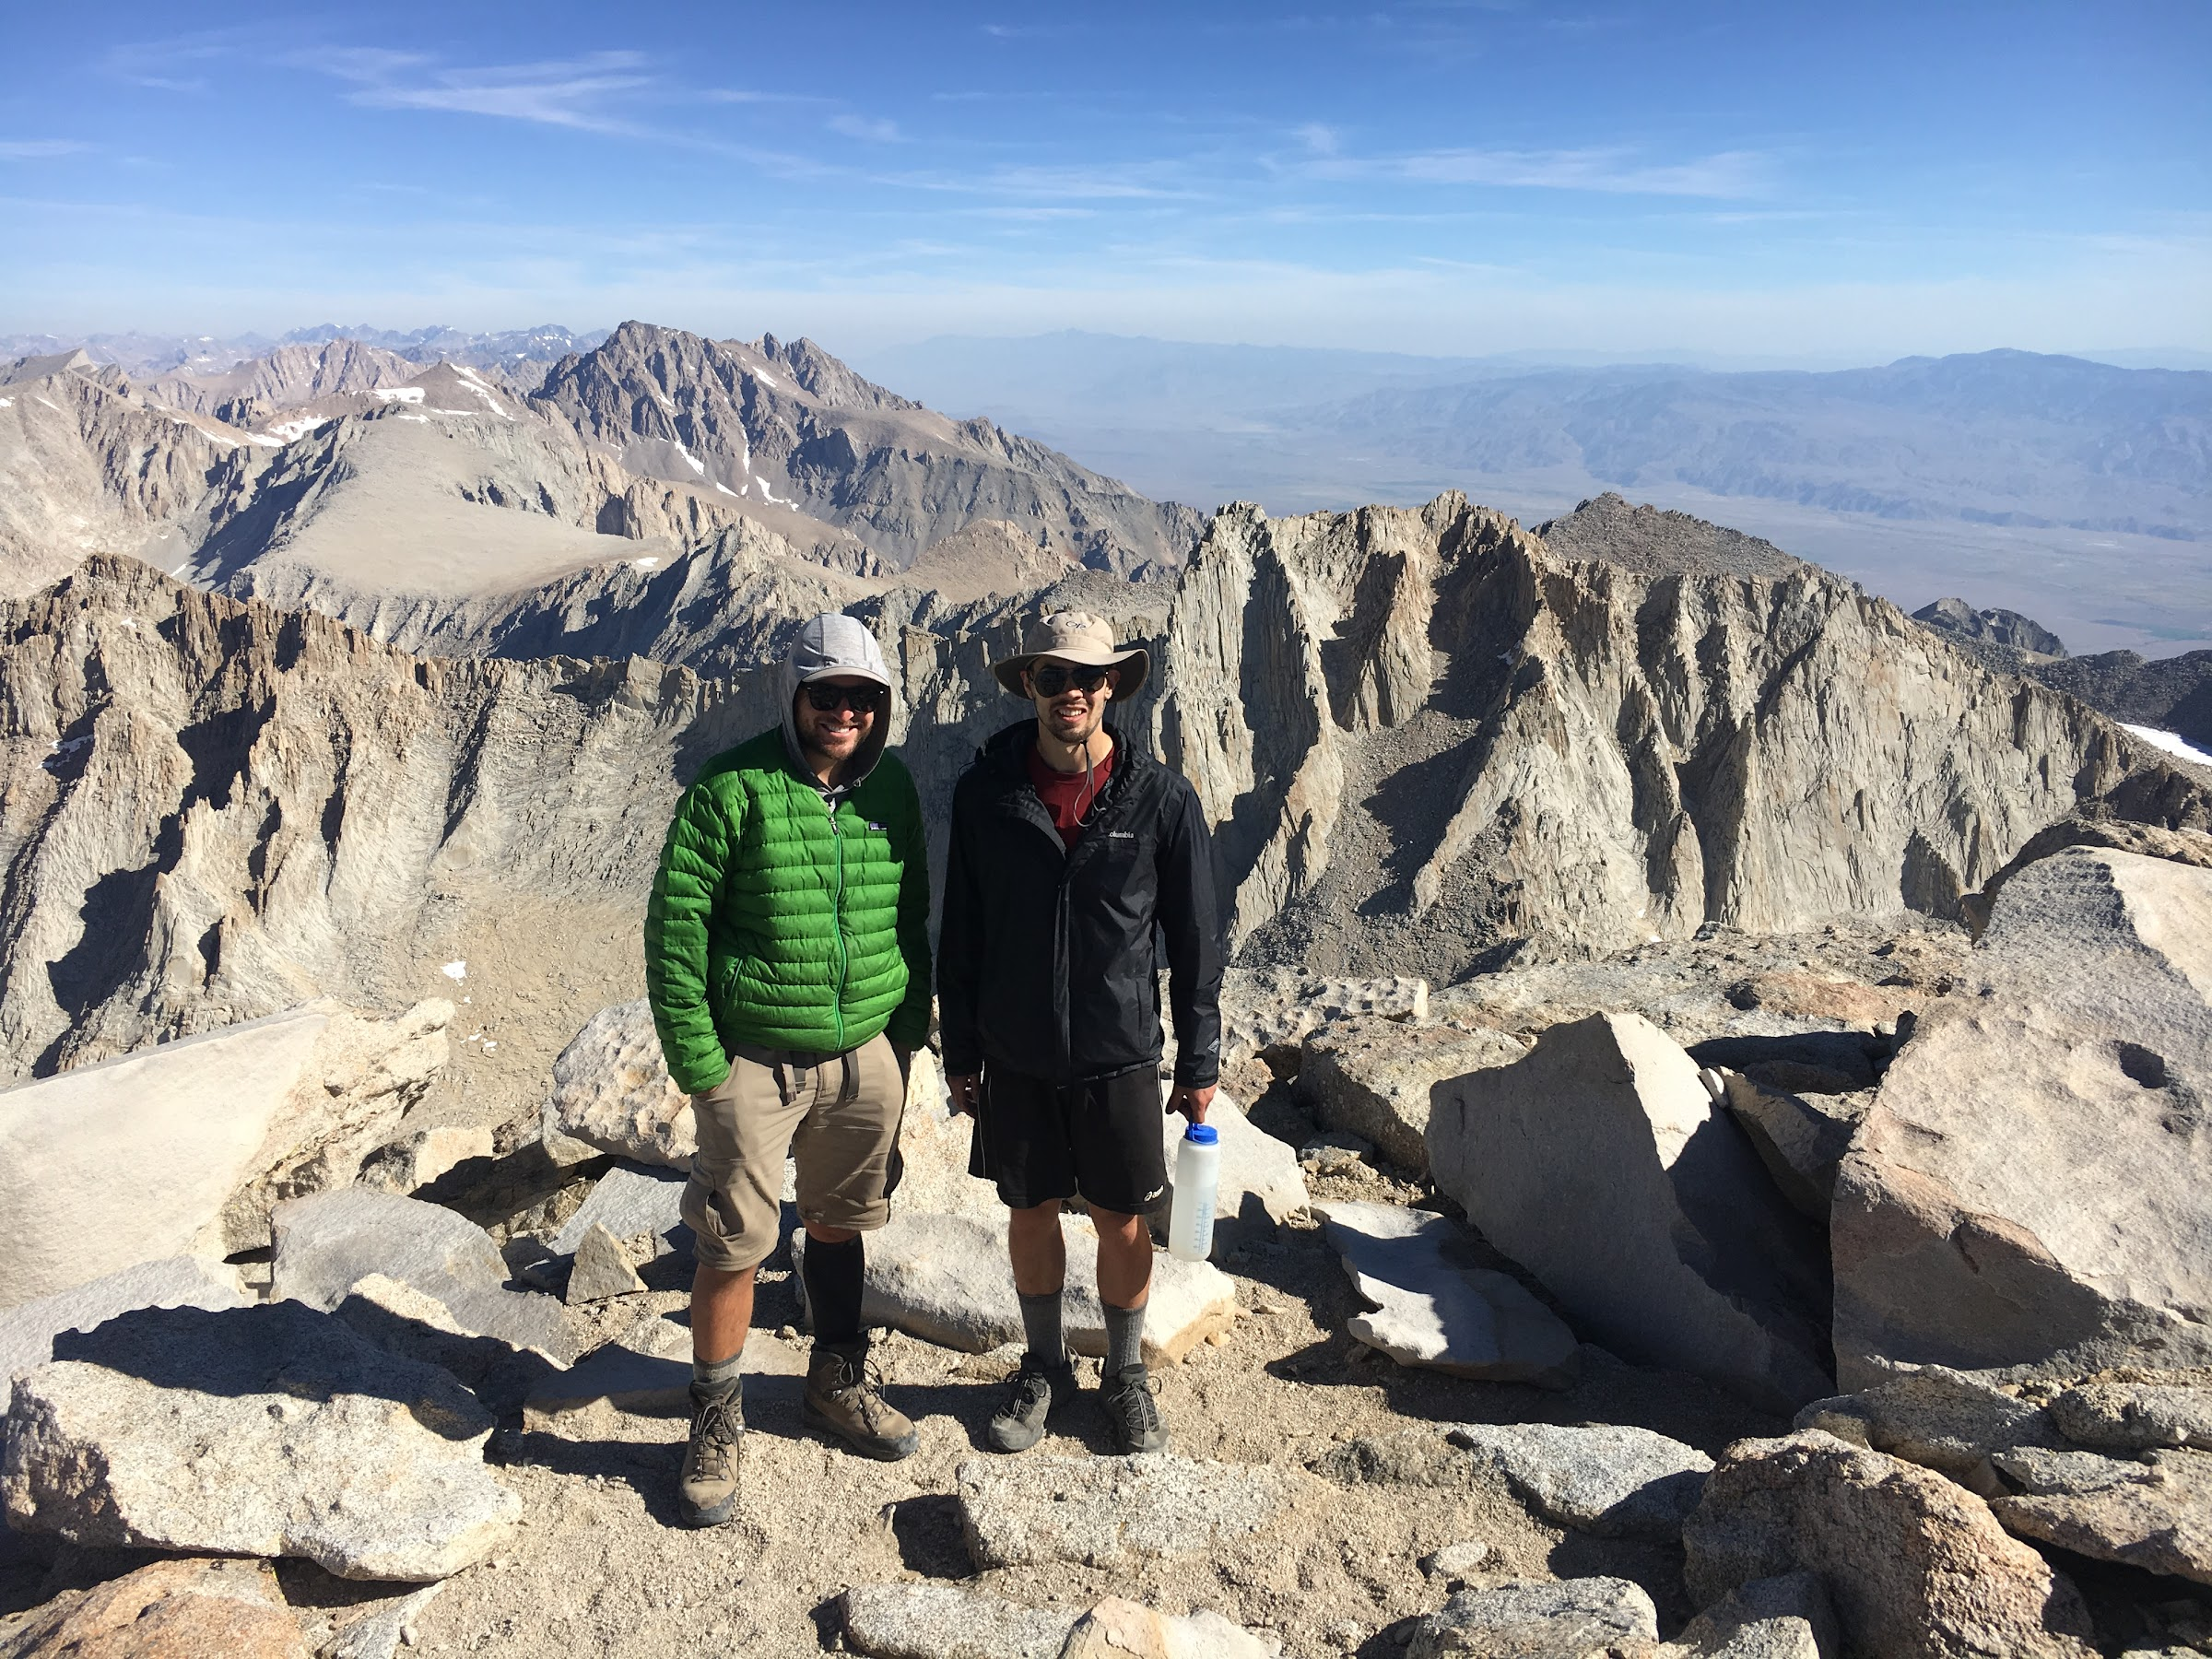 The end of the trail atop the Mount Whitney